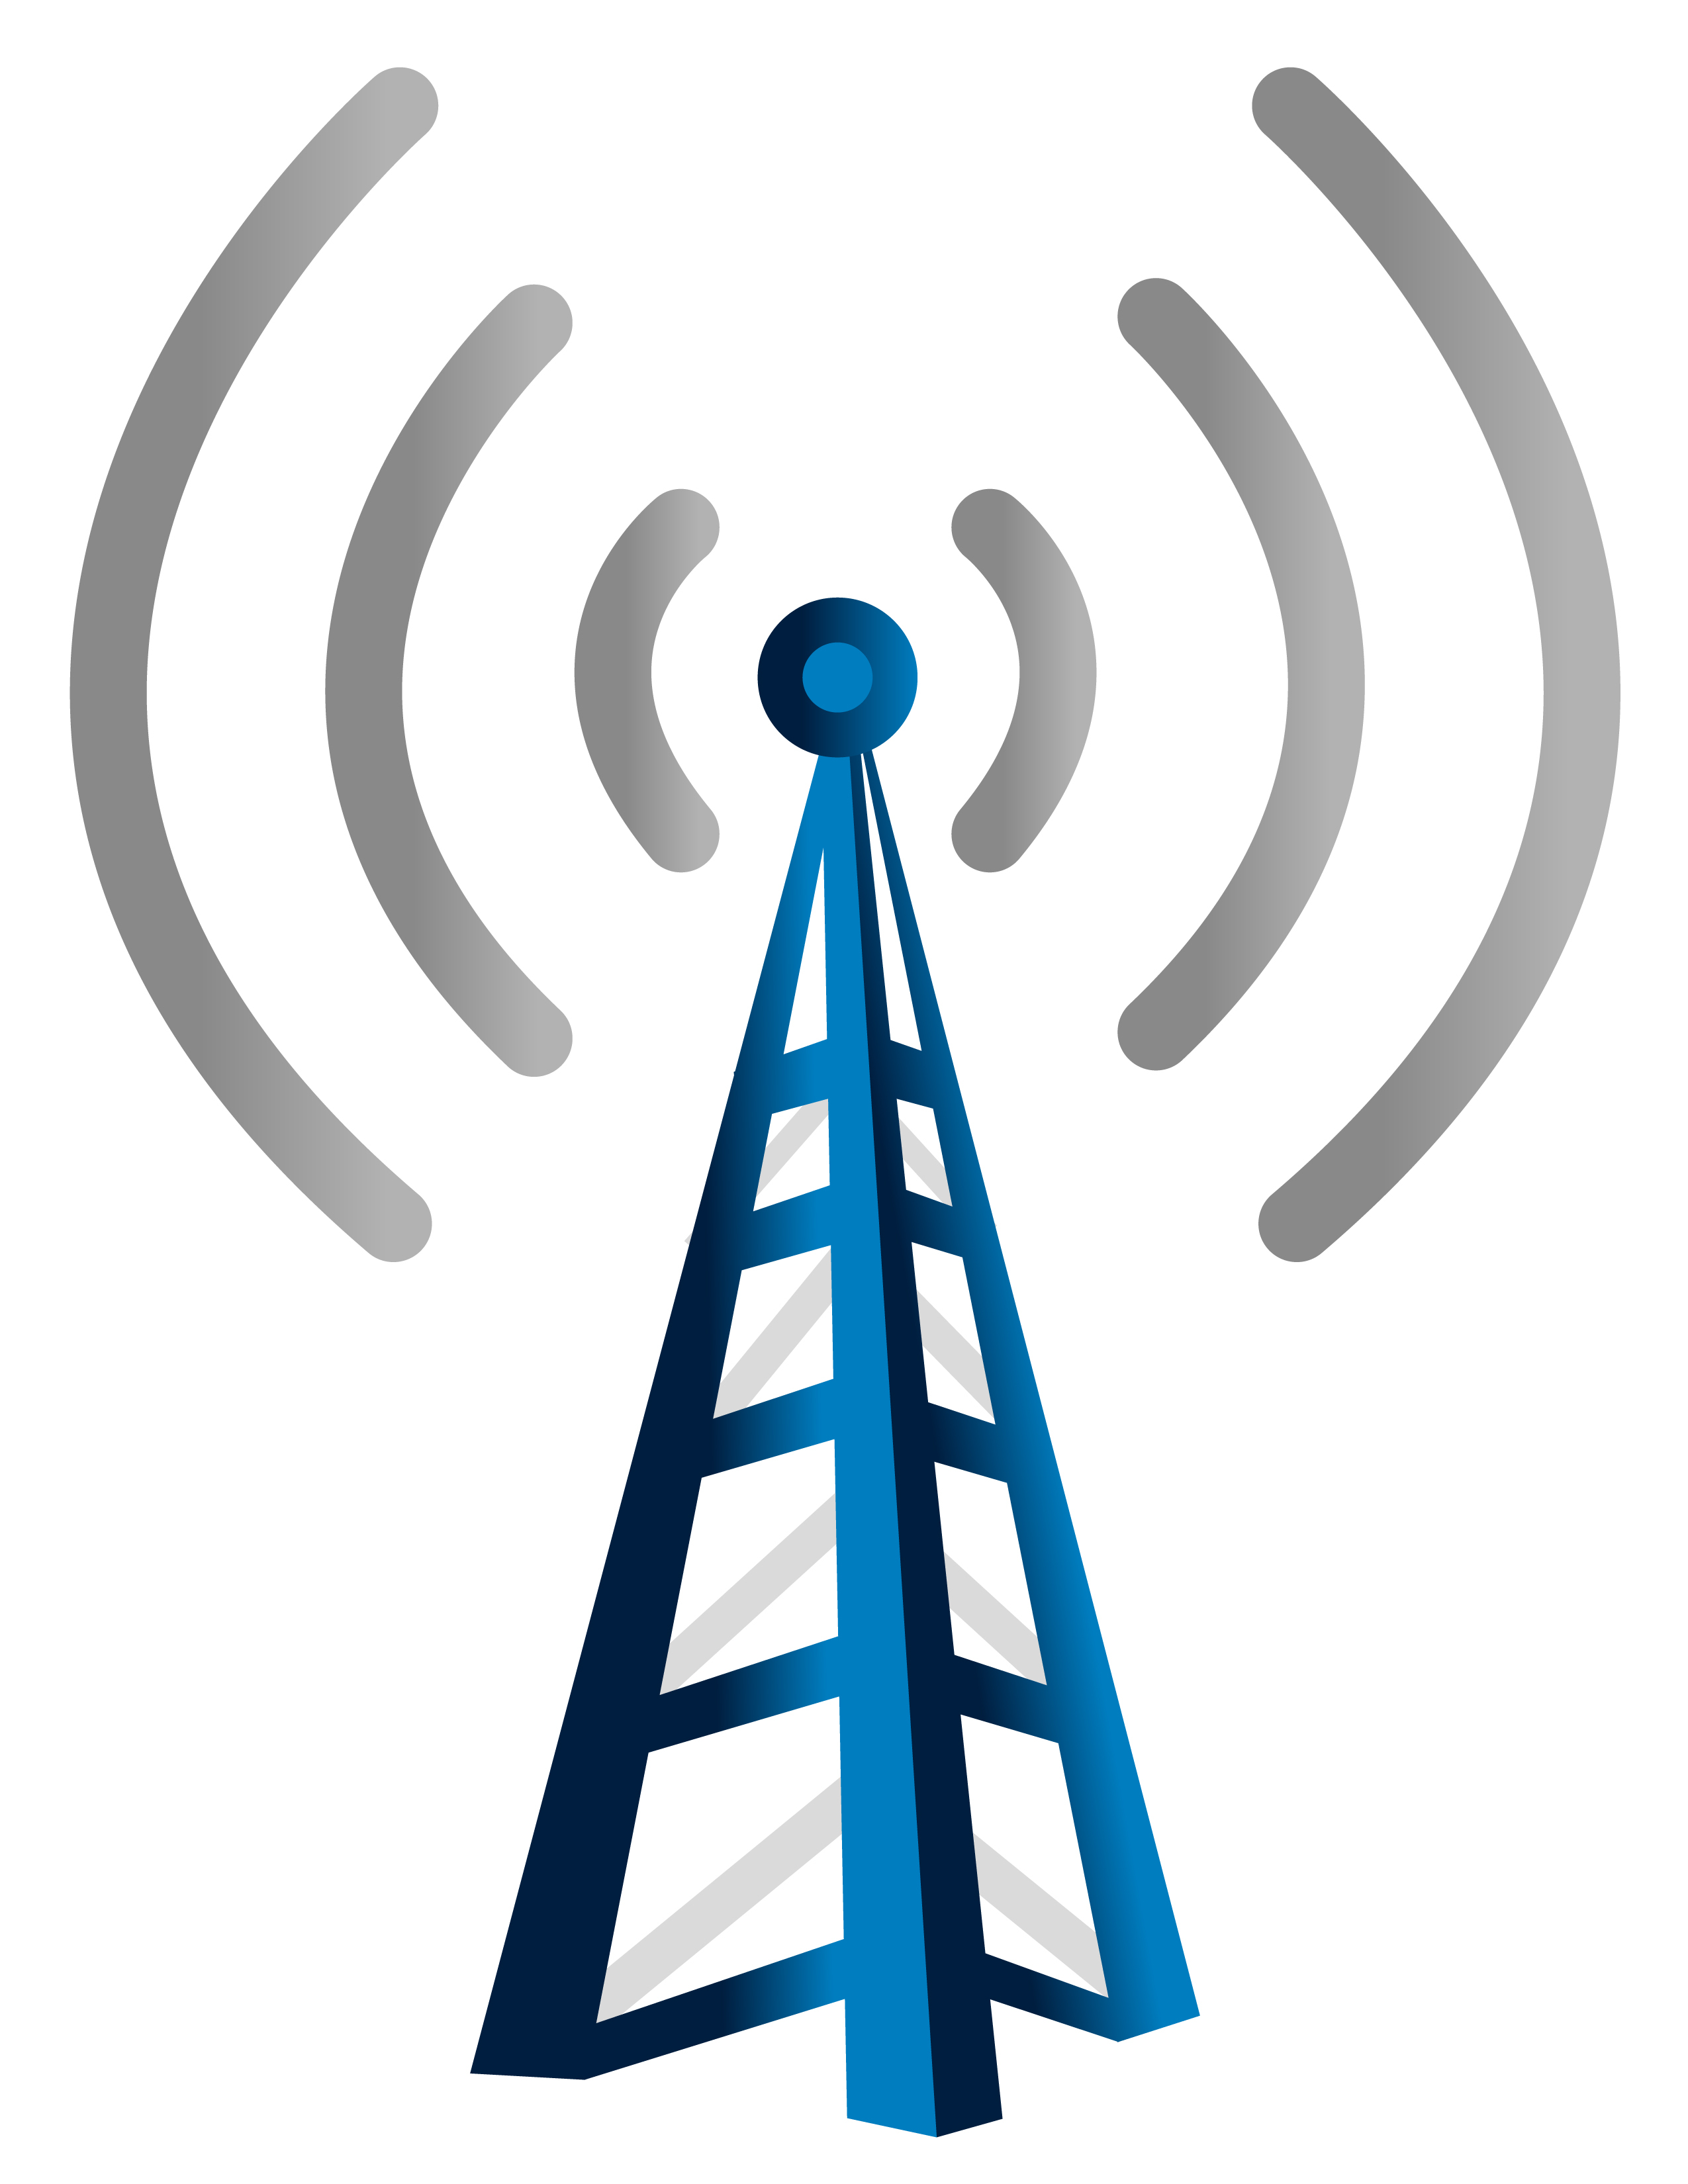 Communication Tower Clipart - Clipart Kid